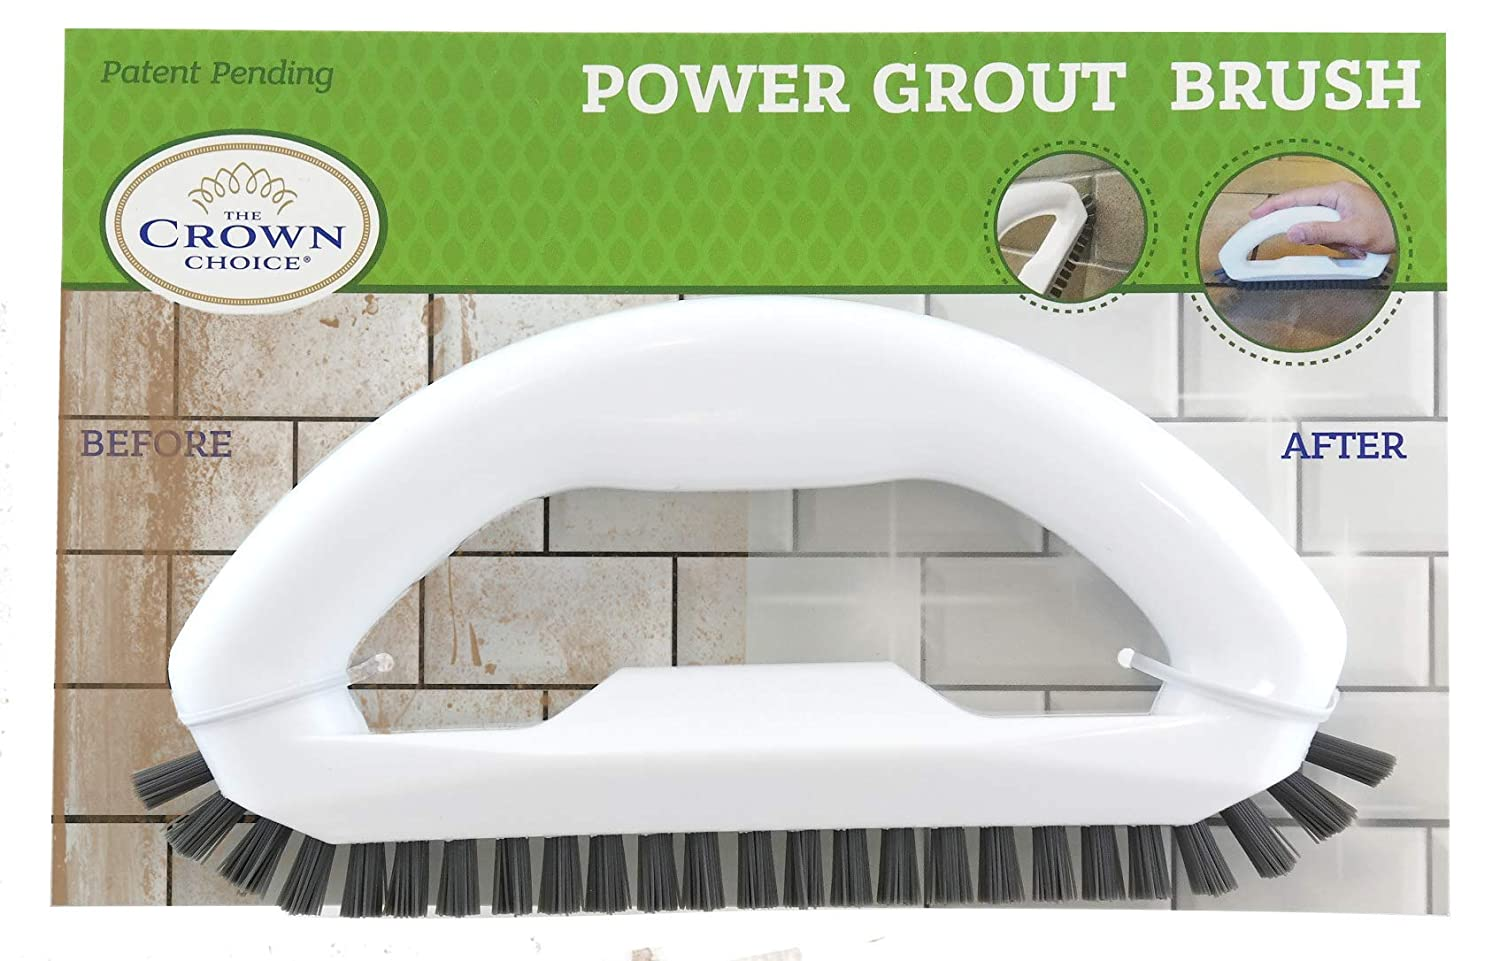 Bathroom Tiles Grout Cleaner Brush with Stiff Angled Bristles Best Scrub Brushes for Shower Cleaning Seams Showers Scrubbing Floor Lines and Tile Joints